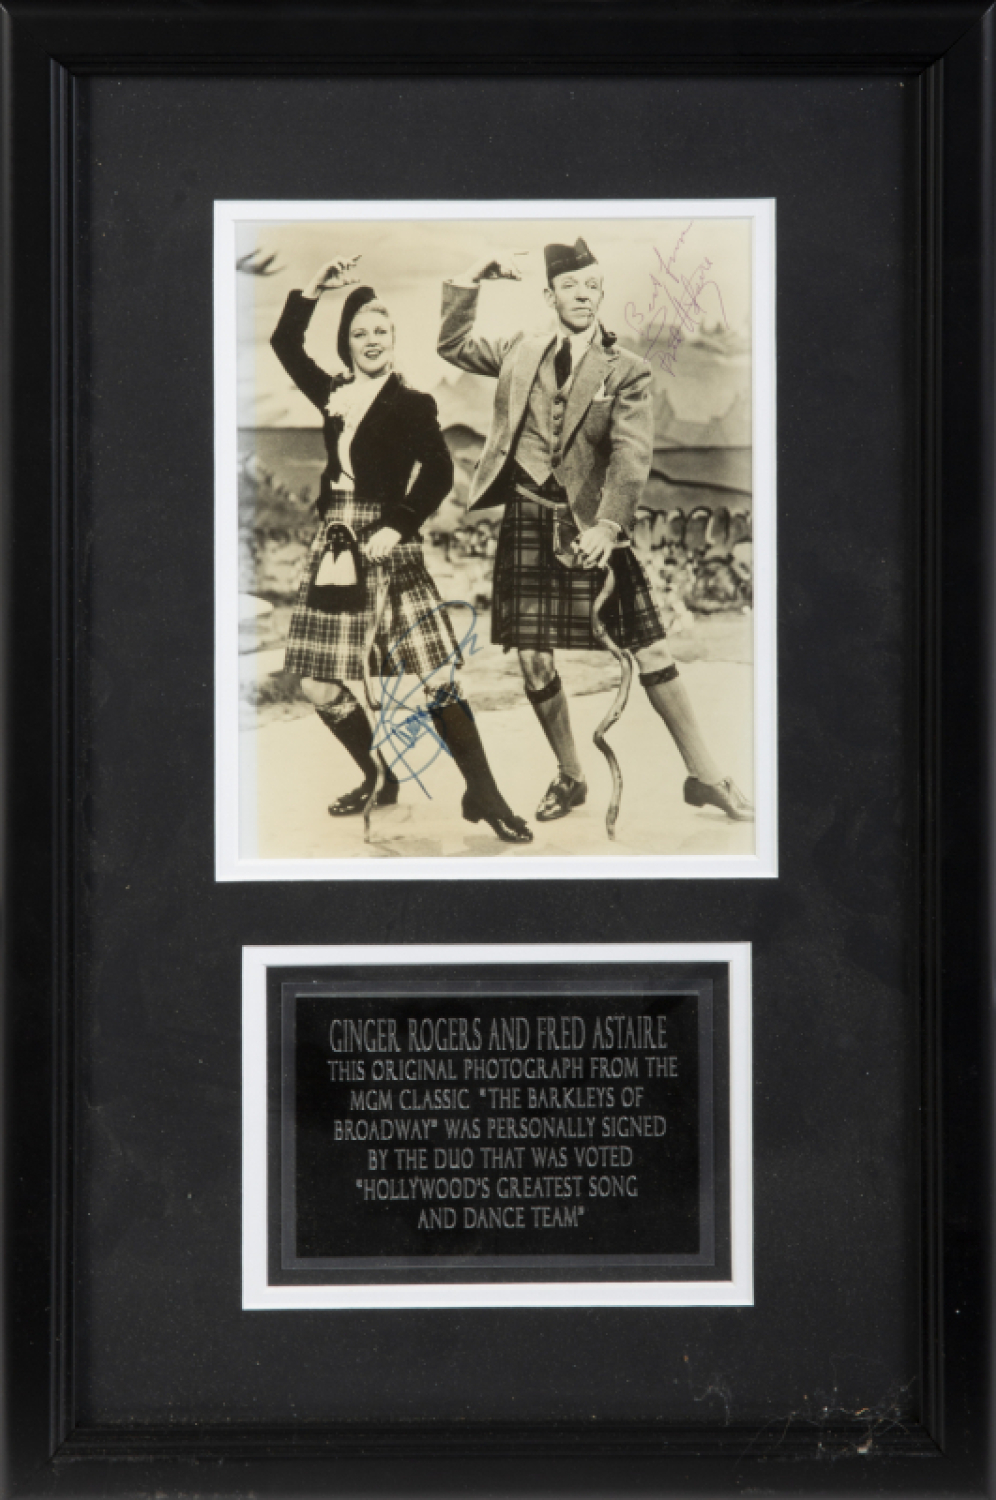 Hugh Hefner Fred Astaire And Ginger Rogers Signed Photograph